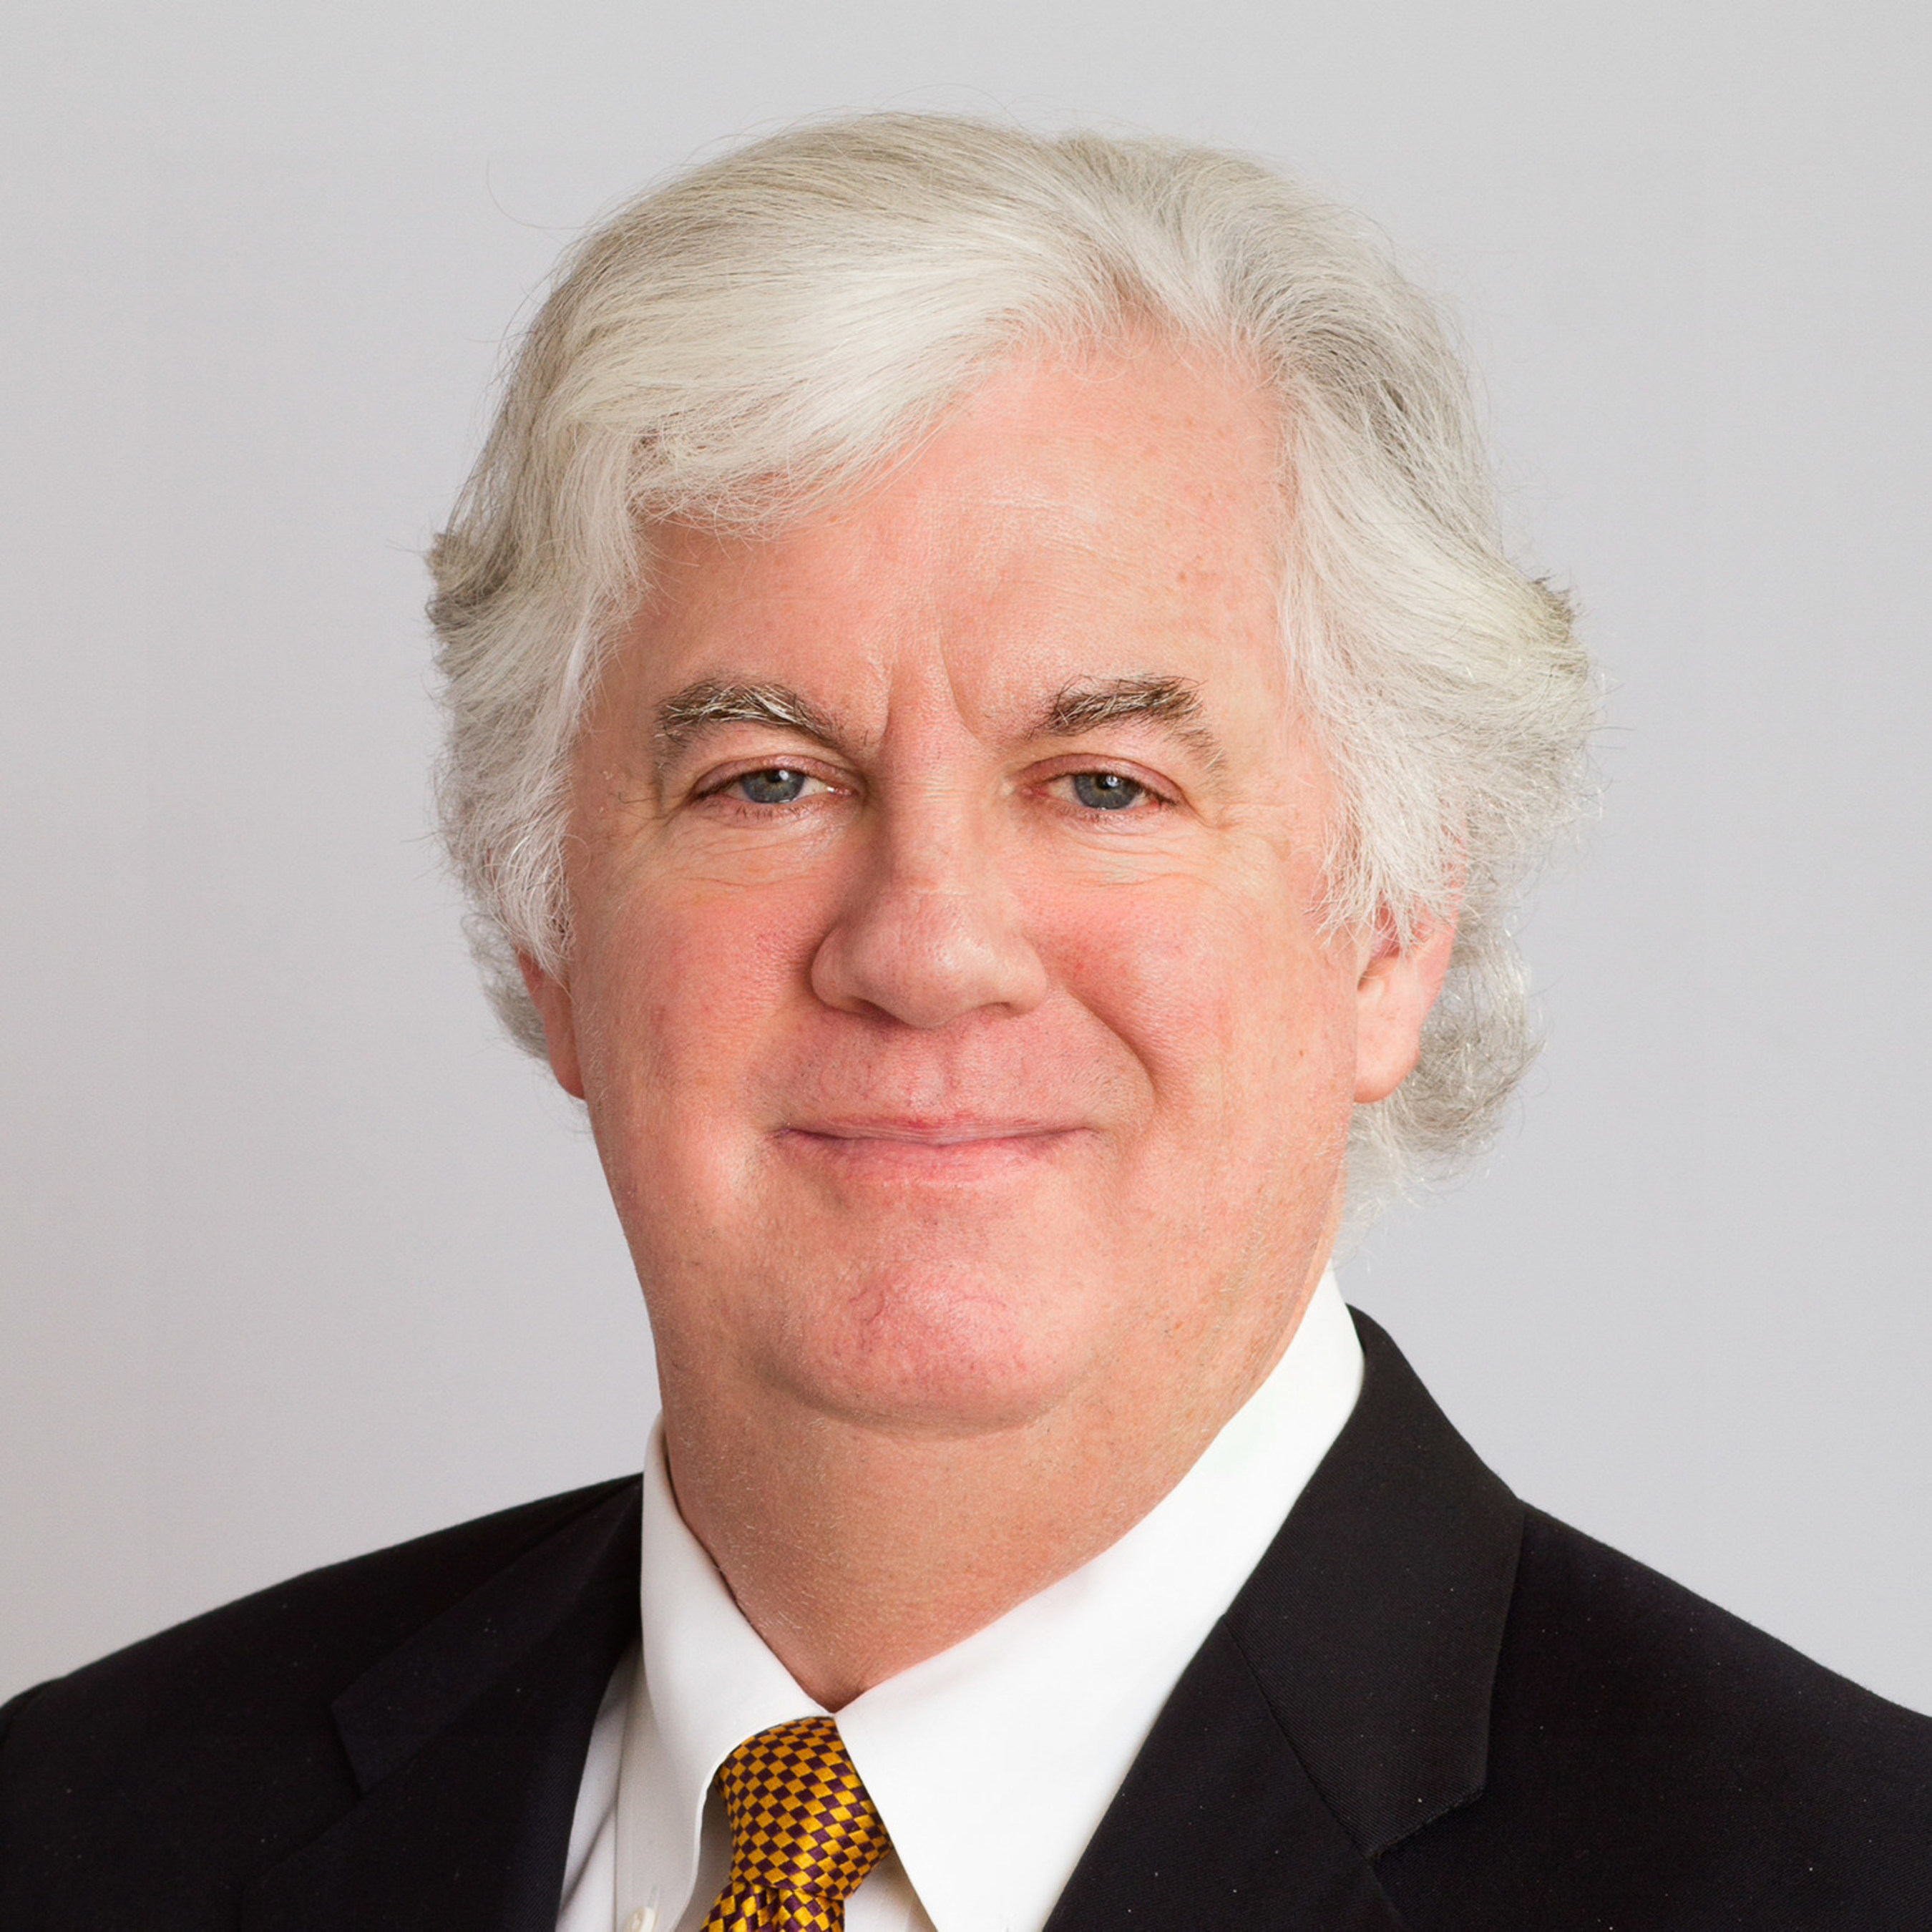 Patrick McVey elected to join the Executive Committee | Riddell Williams Law Firm